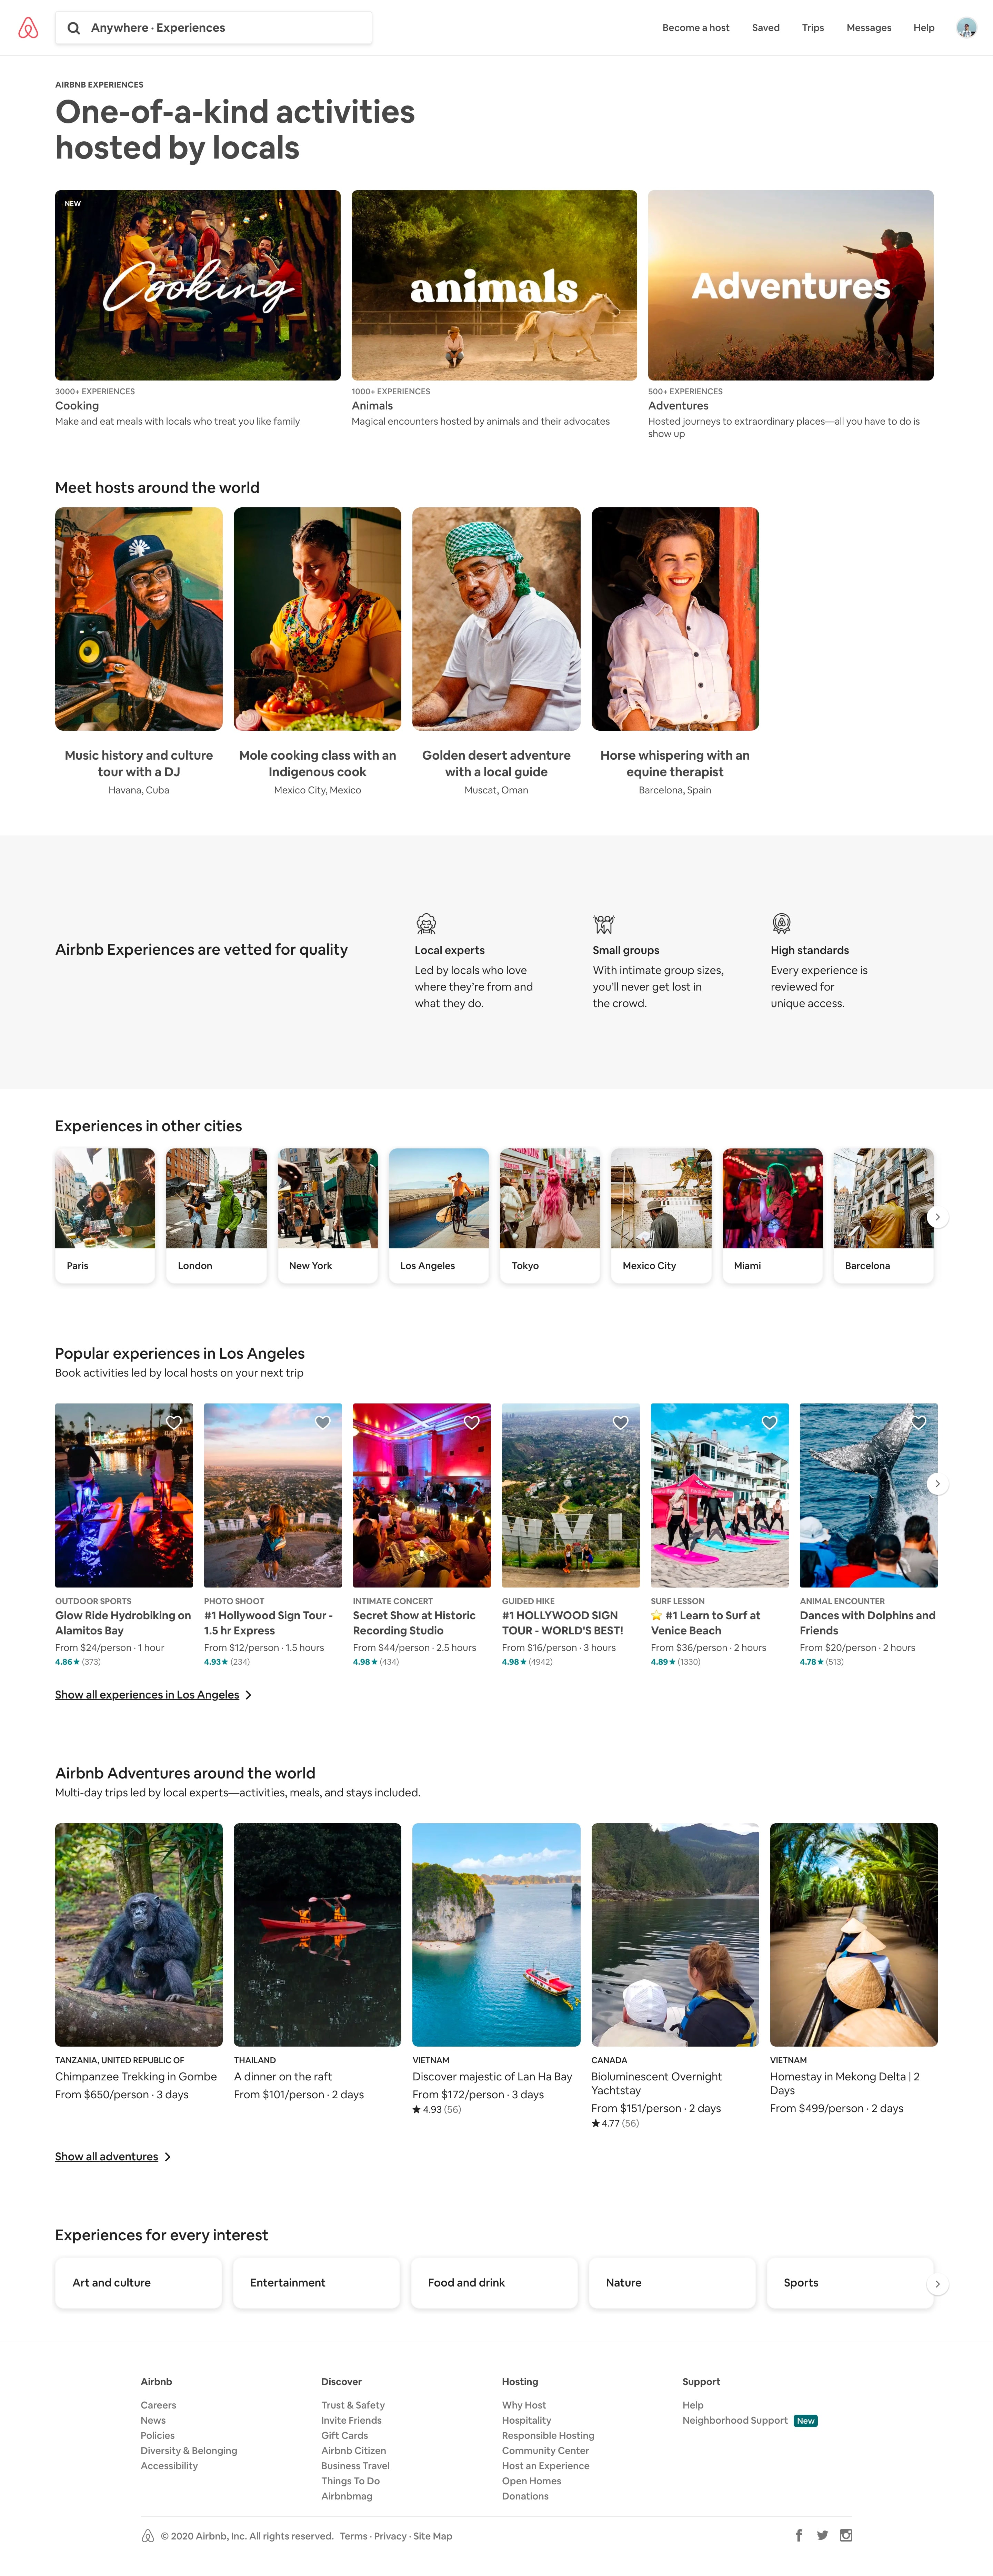 airbnb experiences page design